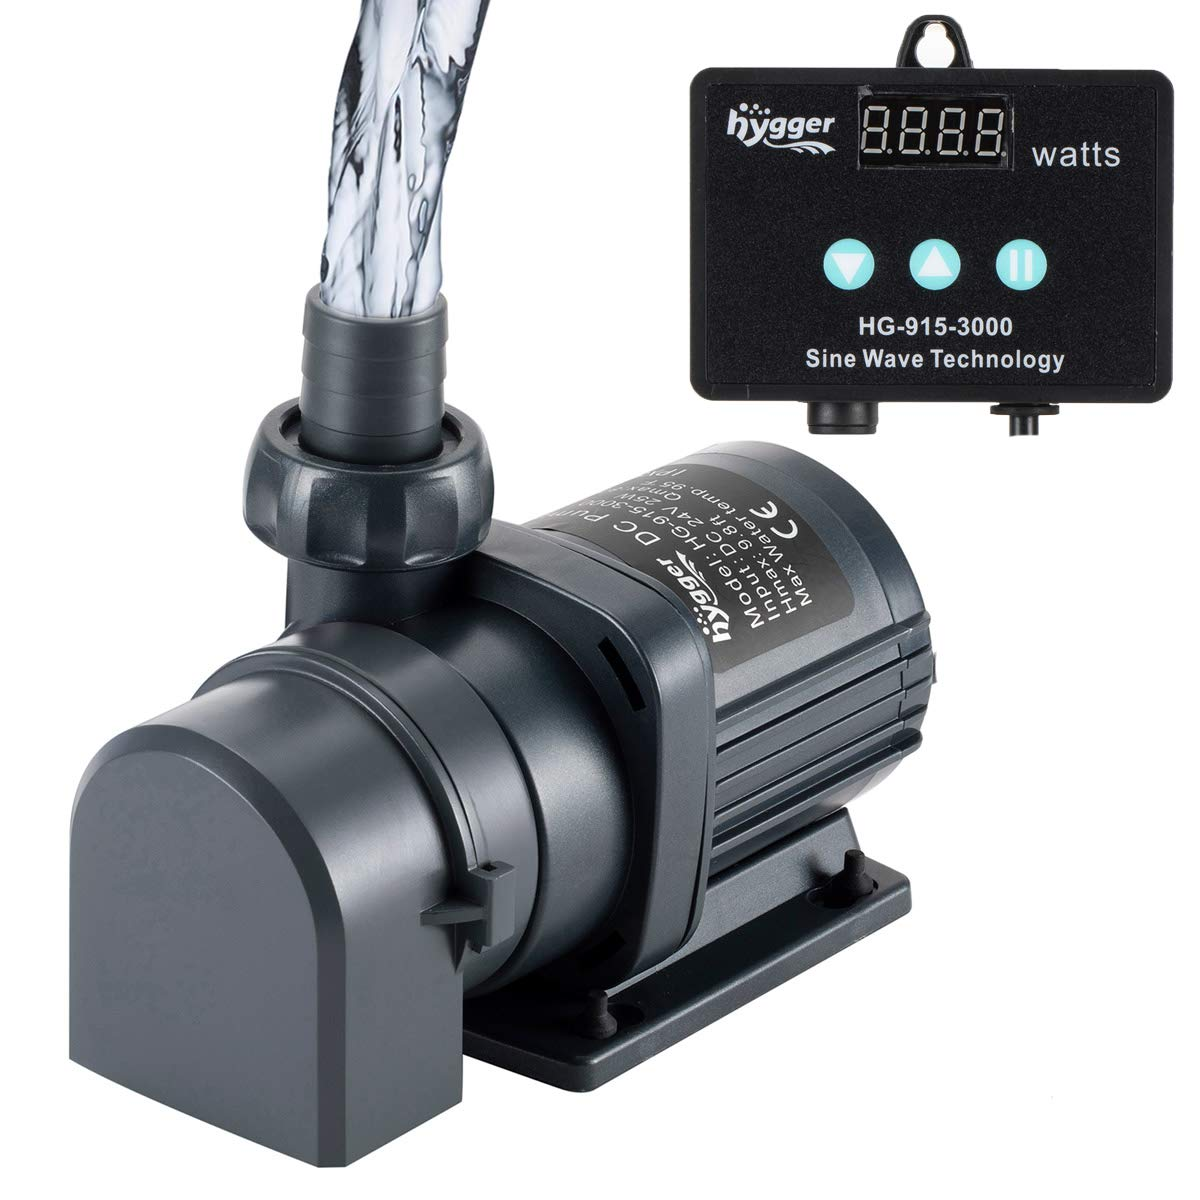 Hygger 800GPH Quiet Submersible and External 24V Water Pump, with Controller (30%-100% Settings), Powerful Return Pump for Fish Tanks, Aquariums, Ponds, Fountains, Sump, Hydroponics (25W, 9.8ft) by Hygger